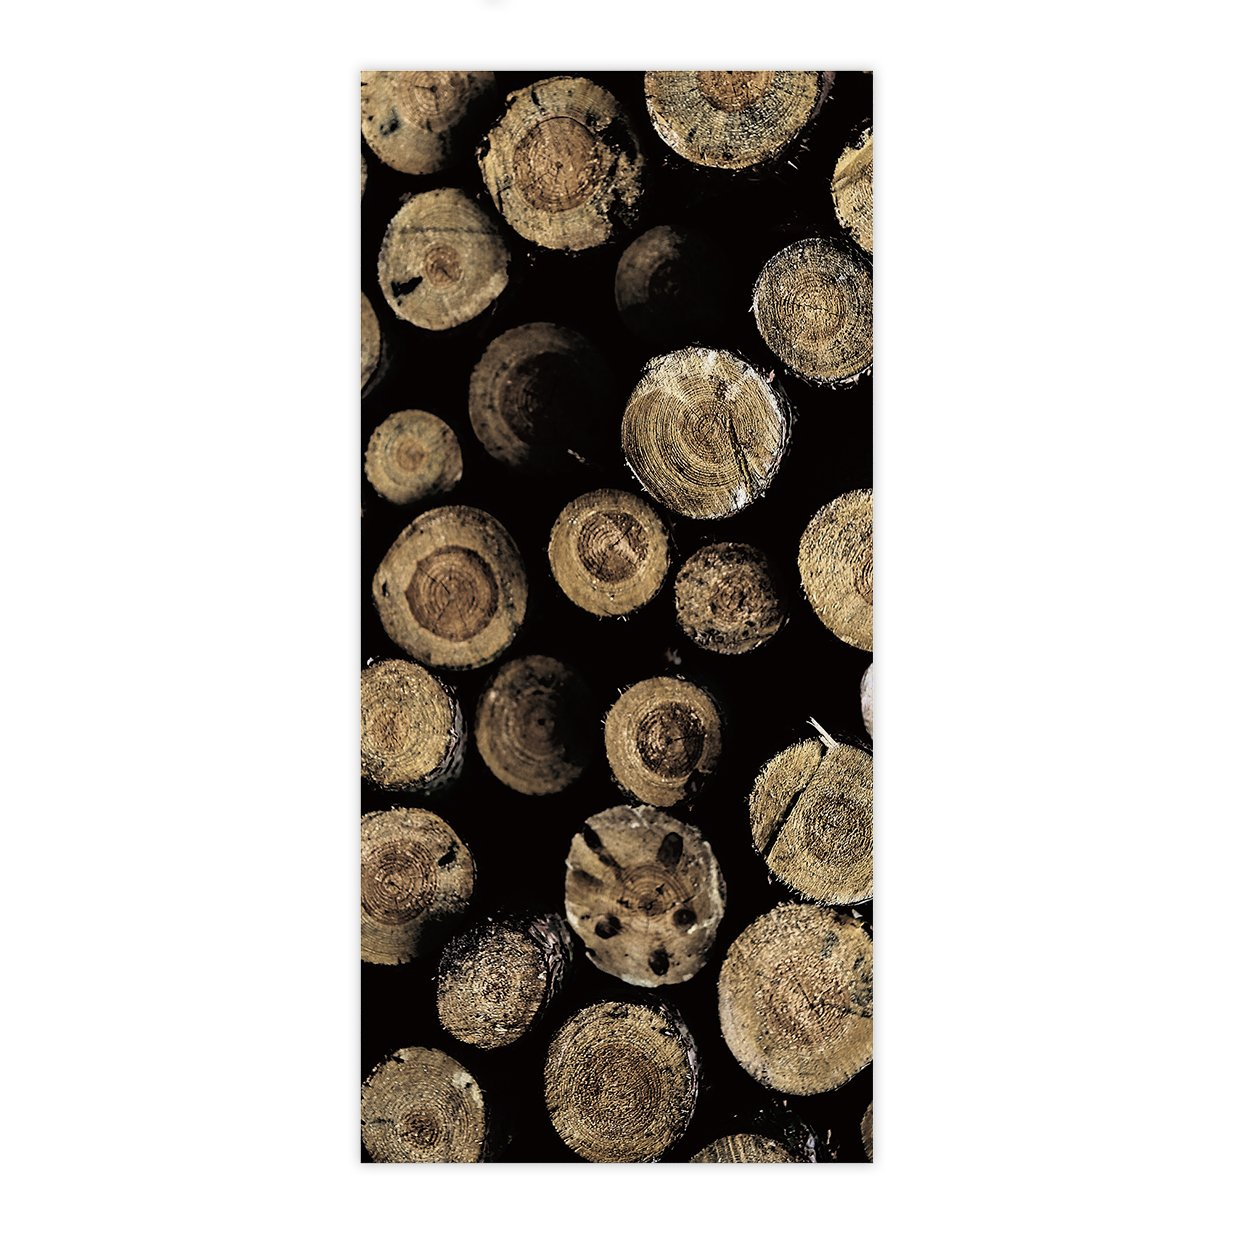 OxOHome Custom Bath Towel Quick Dry Absorbent Towels Spa Shower Wrap for College Dorms, Gyms, Locker Rooms, 27.5 x 55 inch - Rustic Wood